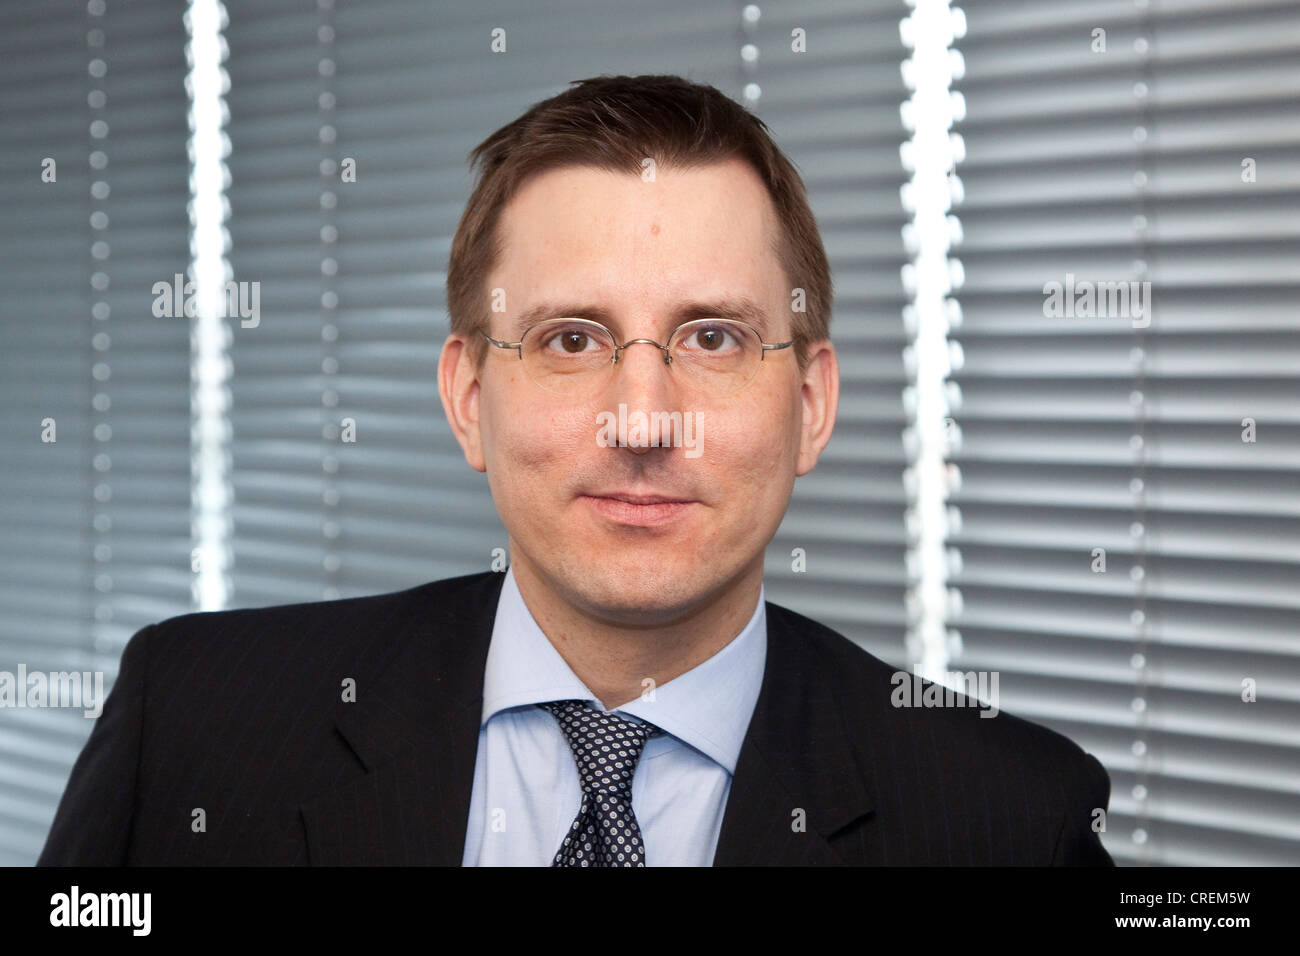 Andreas Paulke, Chief Financial Officer der Deutsche Beteiligungs AG Corporation, Pressekonferenz am 28.01.2011 Stockbild